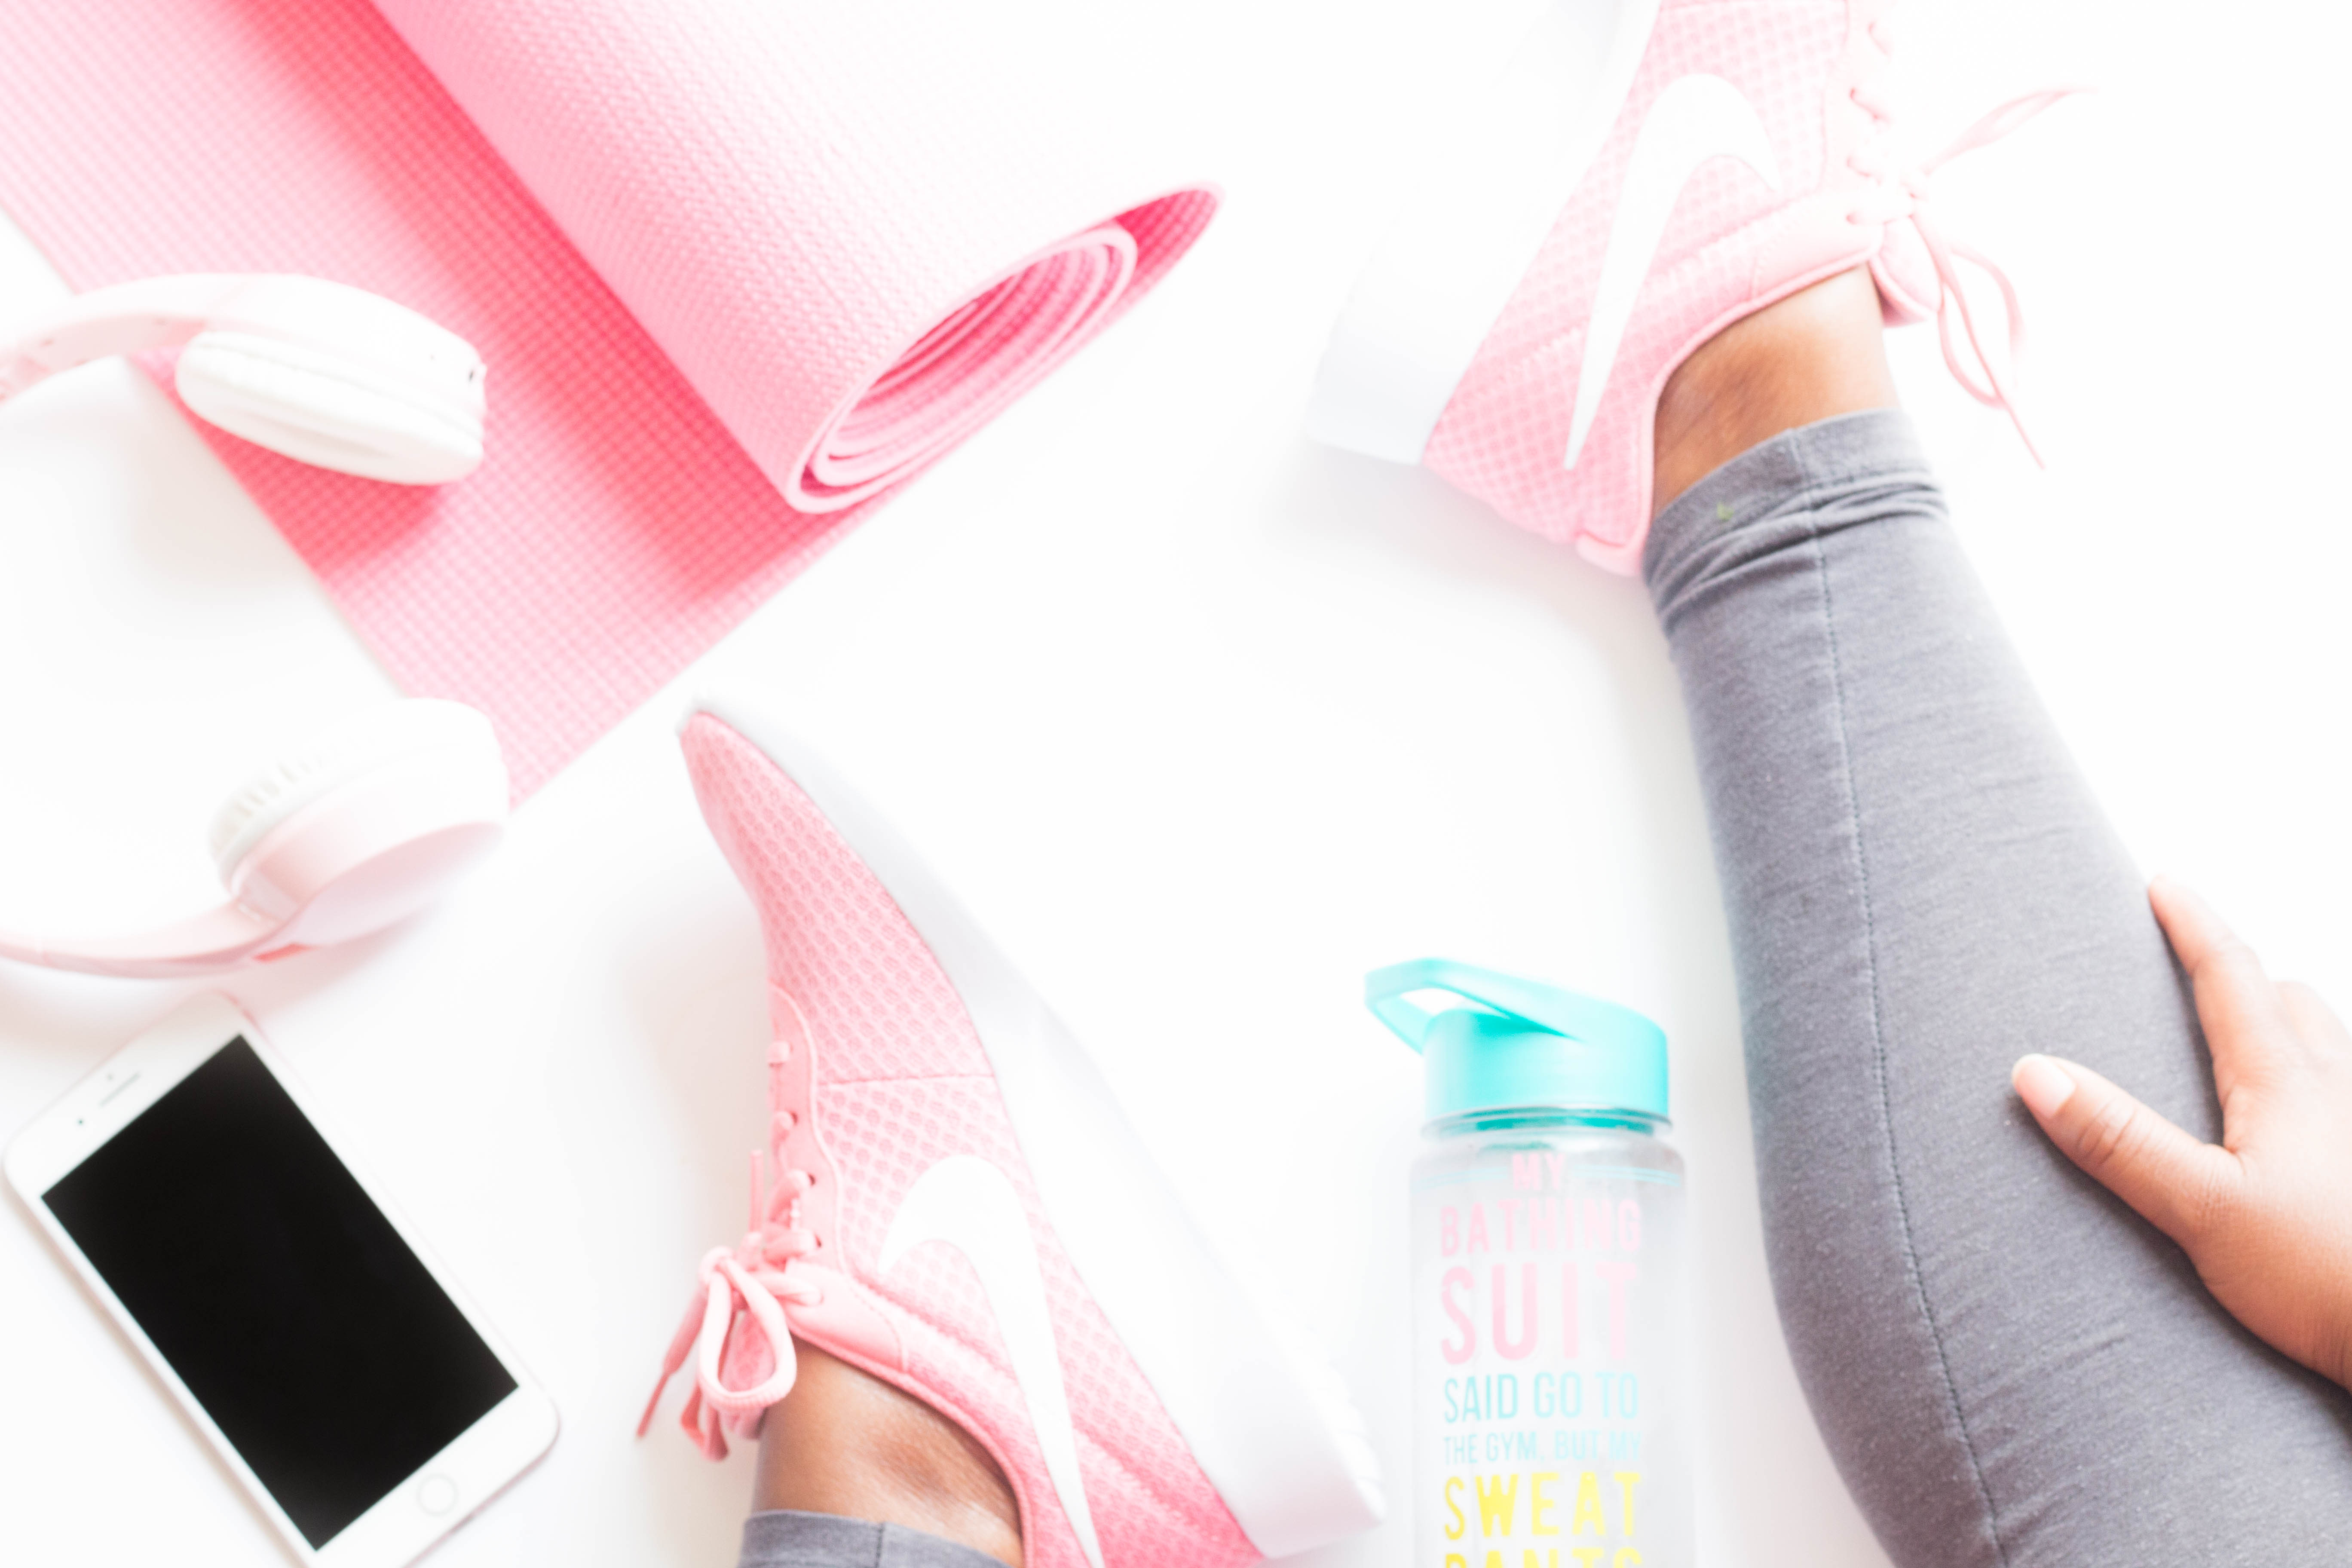 Flat lay with yoga mat, head phones, iphone, water bottle. Luara from Mom Connection helps help moms lose weight and talking about why moms have a hard time losing weight.